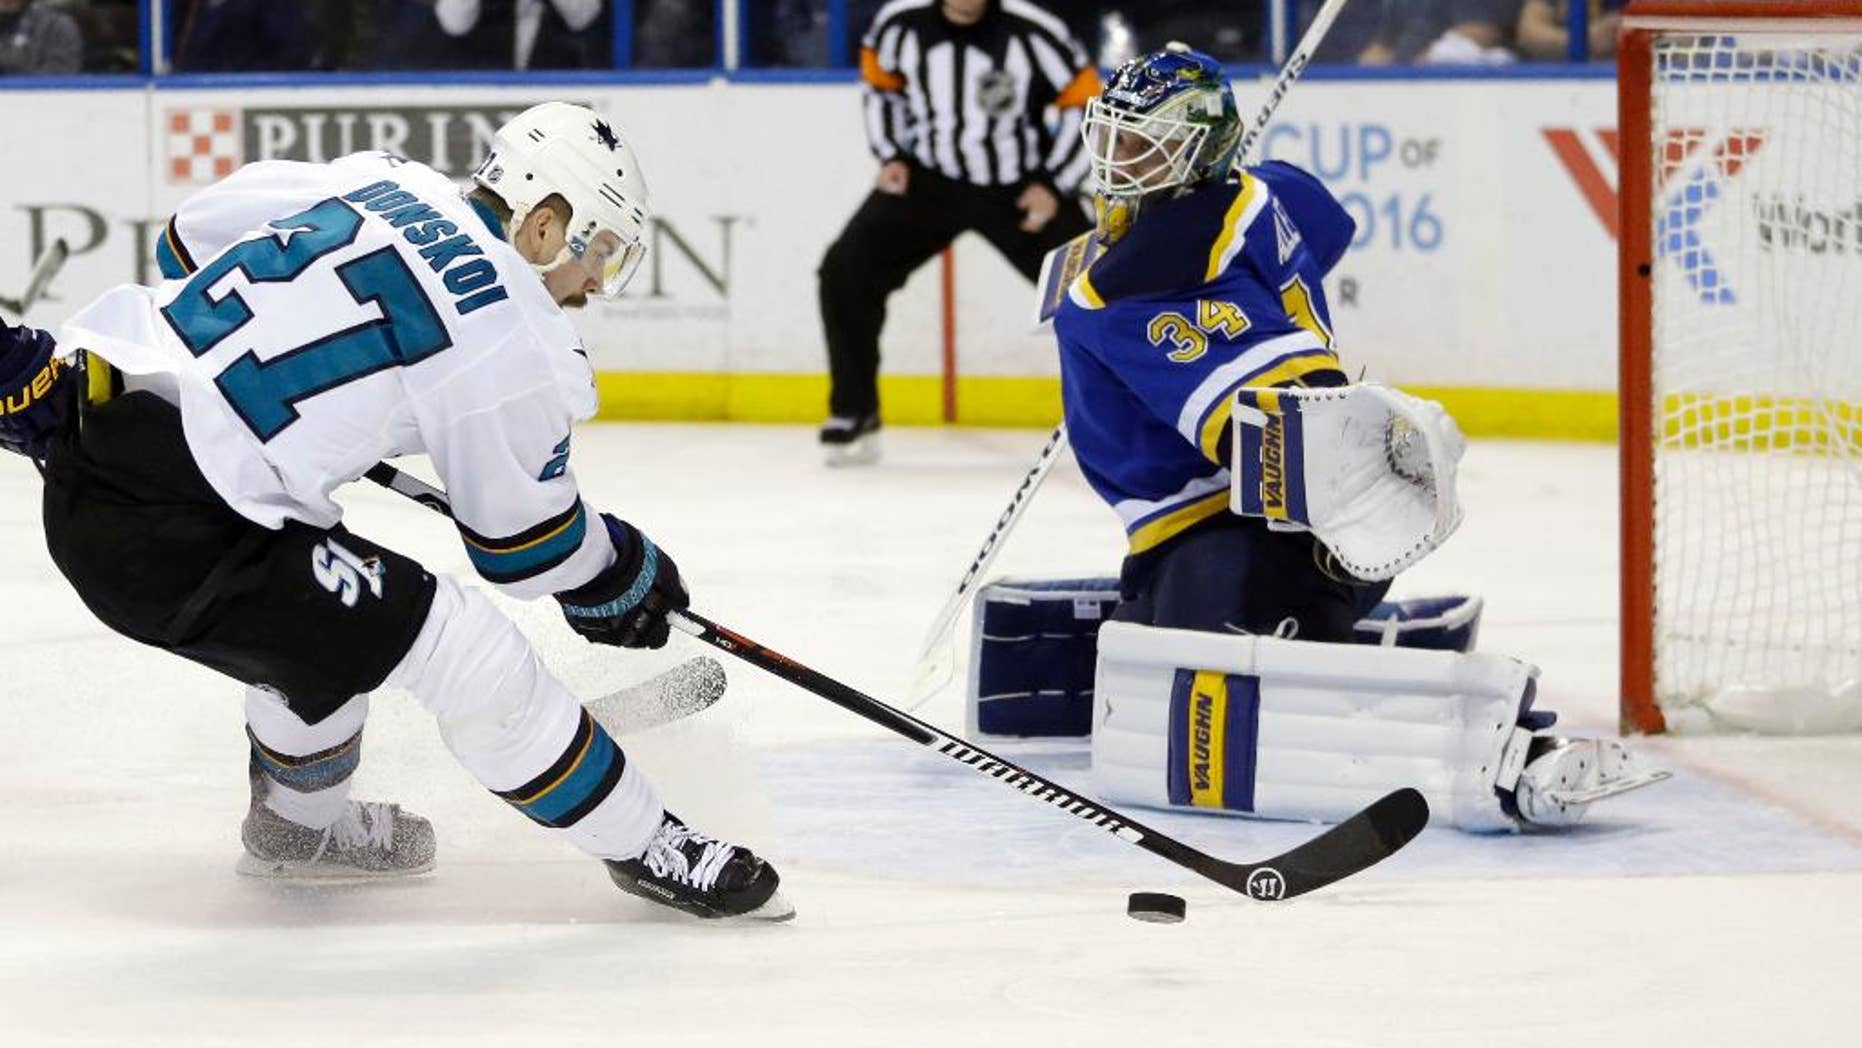 San Jose Sharks right wing Joonas Donskoi (27) chases the puck against St. Louis Blues goalie Jake Allen (34) during the third period in Game 5 of the NHL hockey Stanley Cup Western Conference finals, Monday, May 23, 2016, in St. Louis. (AP Photo/Jeff Roberson)